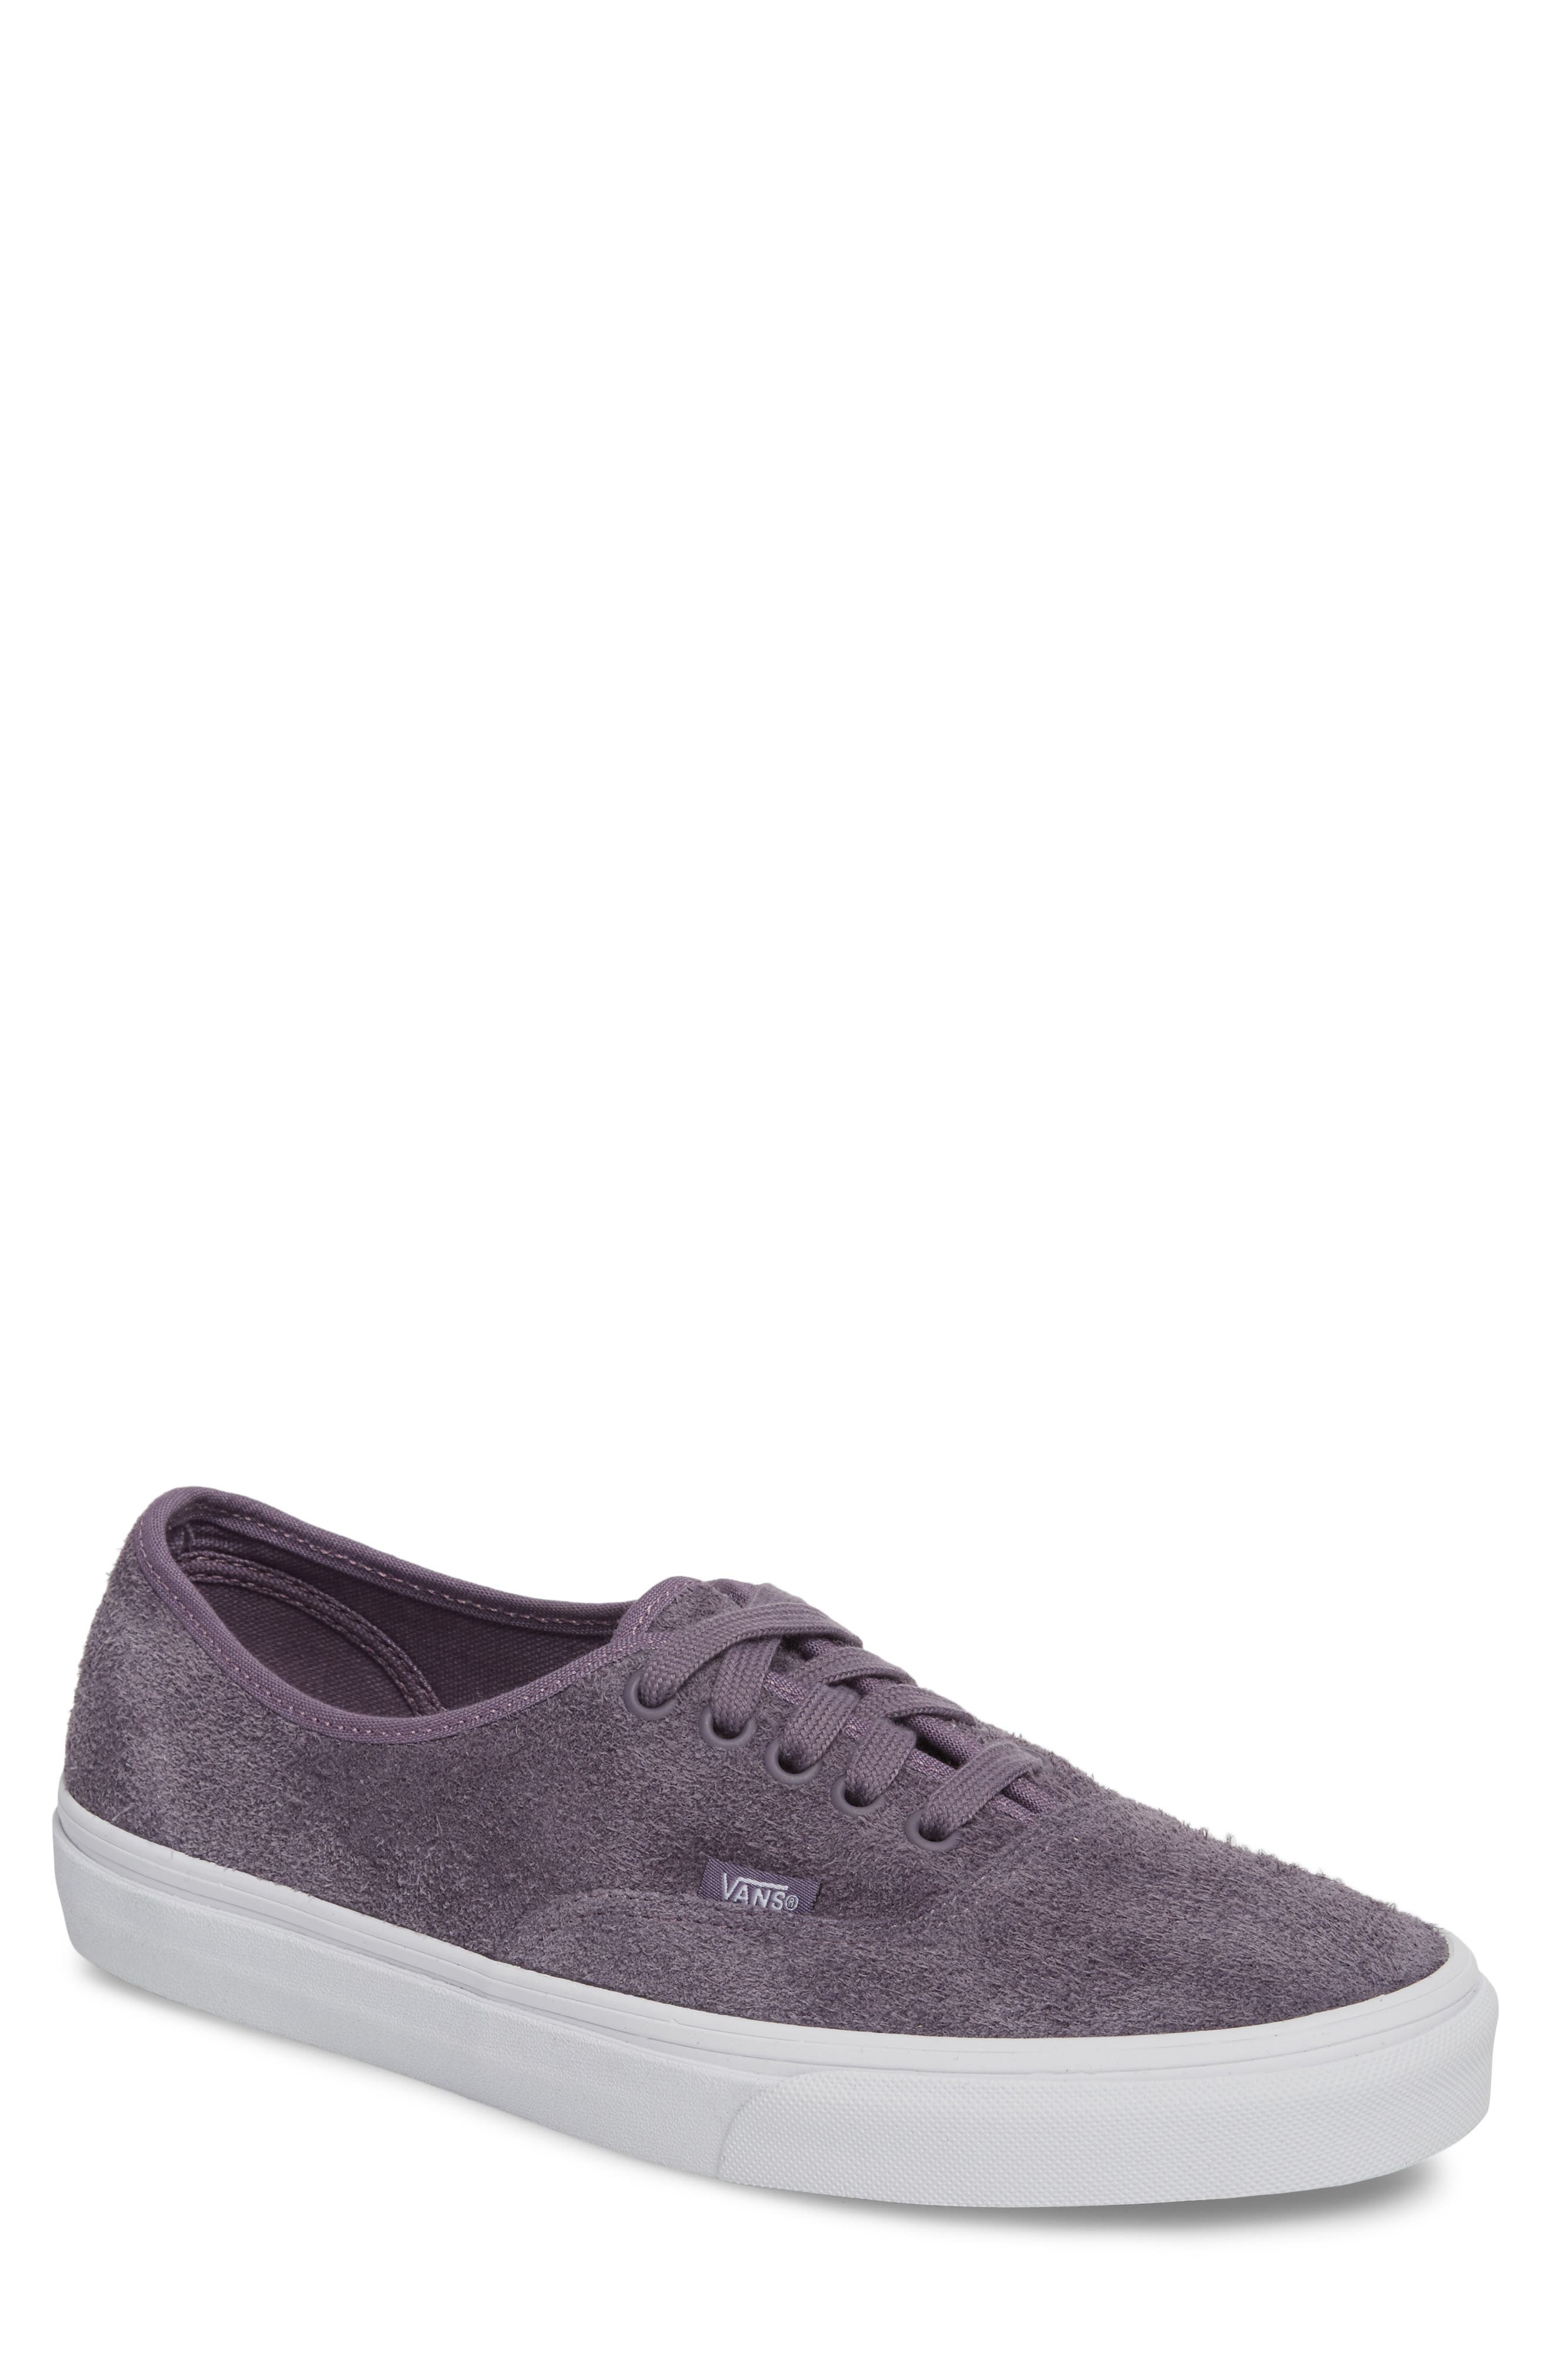 Authentic Hairy Suede Low Top Sneaker,                         Main,                         color, 510